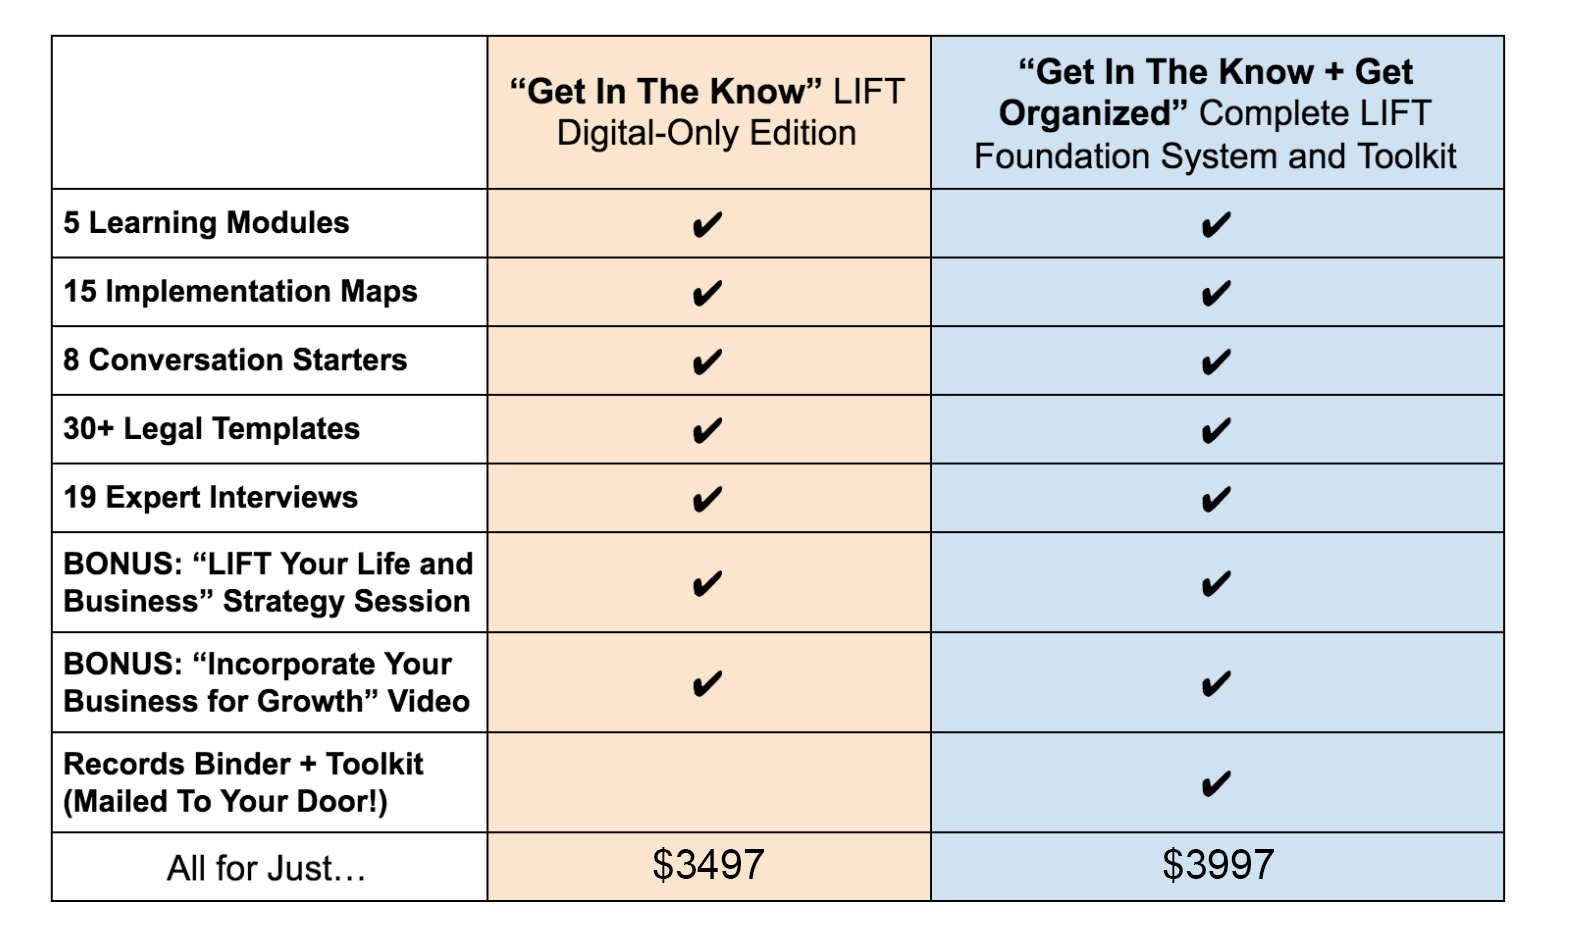 Alexis Neely – LIFT Foundation System & Toolkit LIFTchart